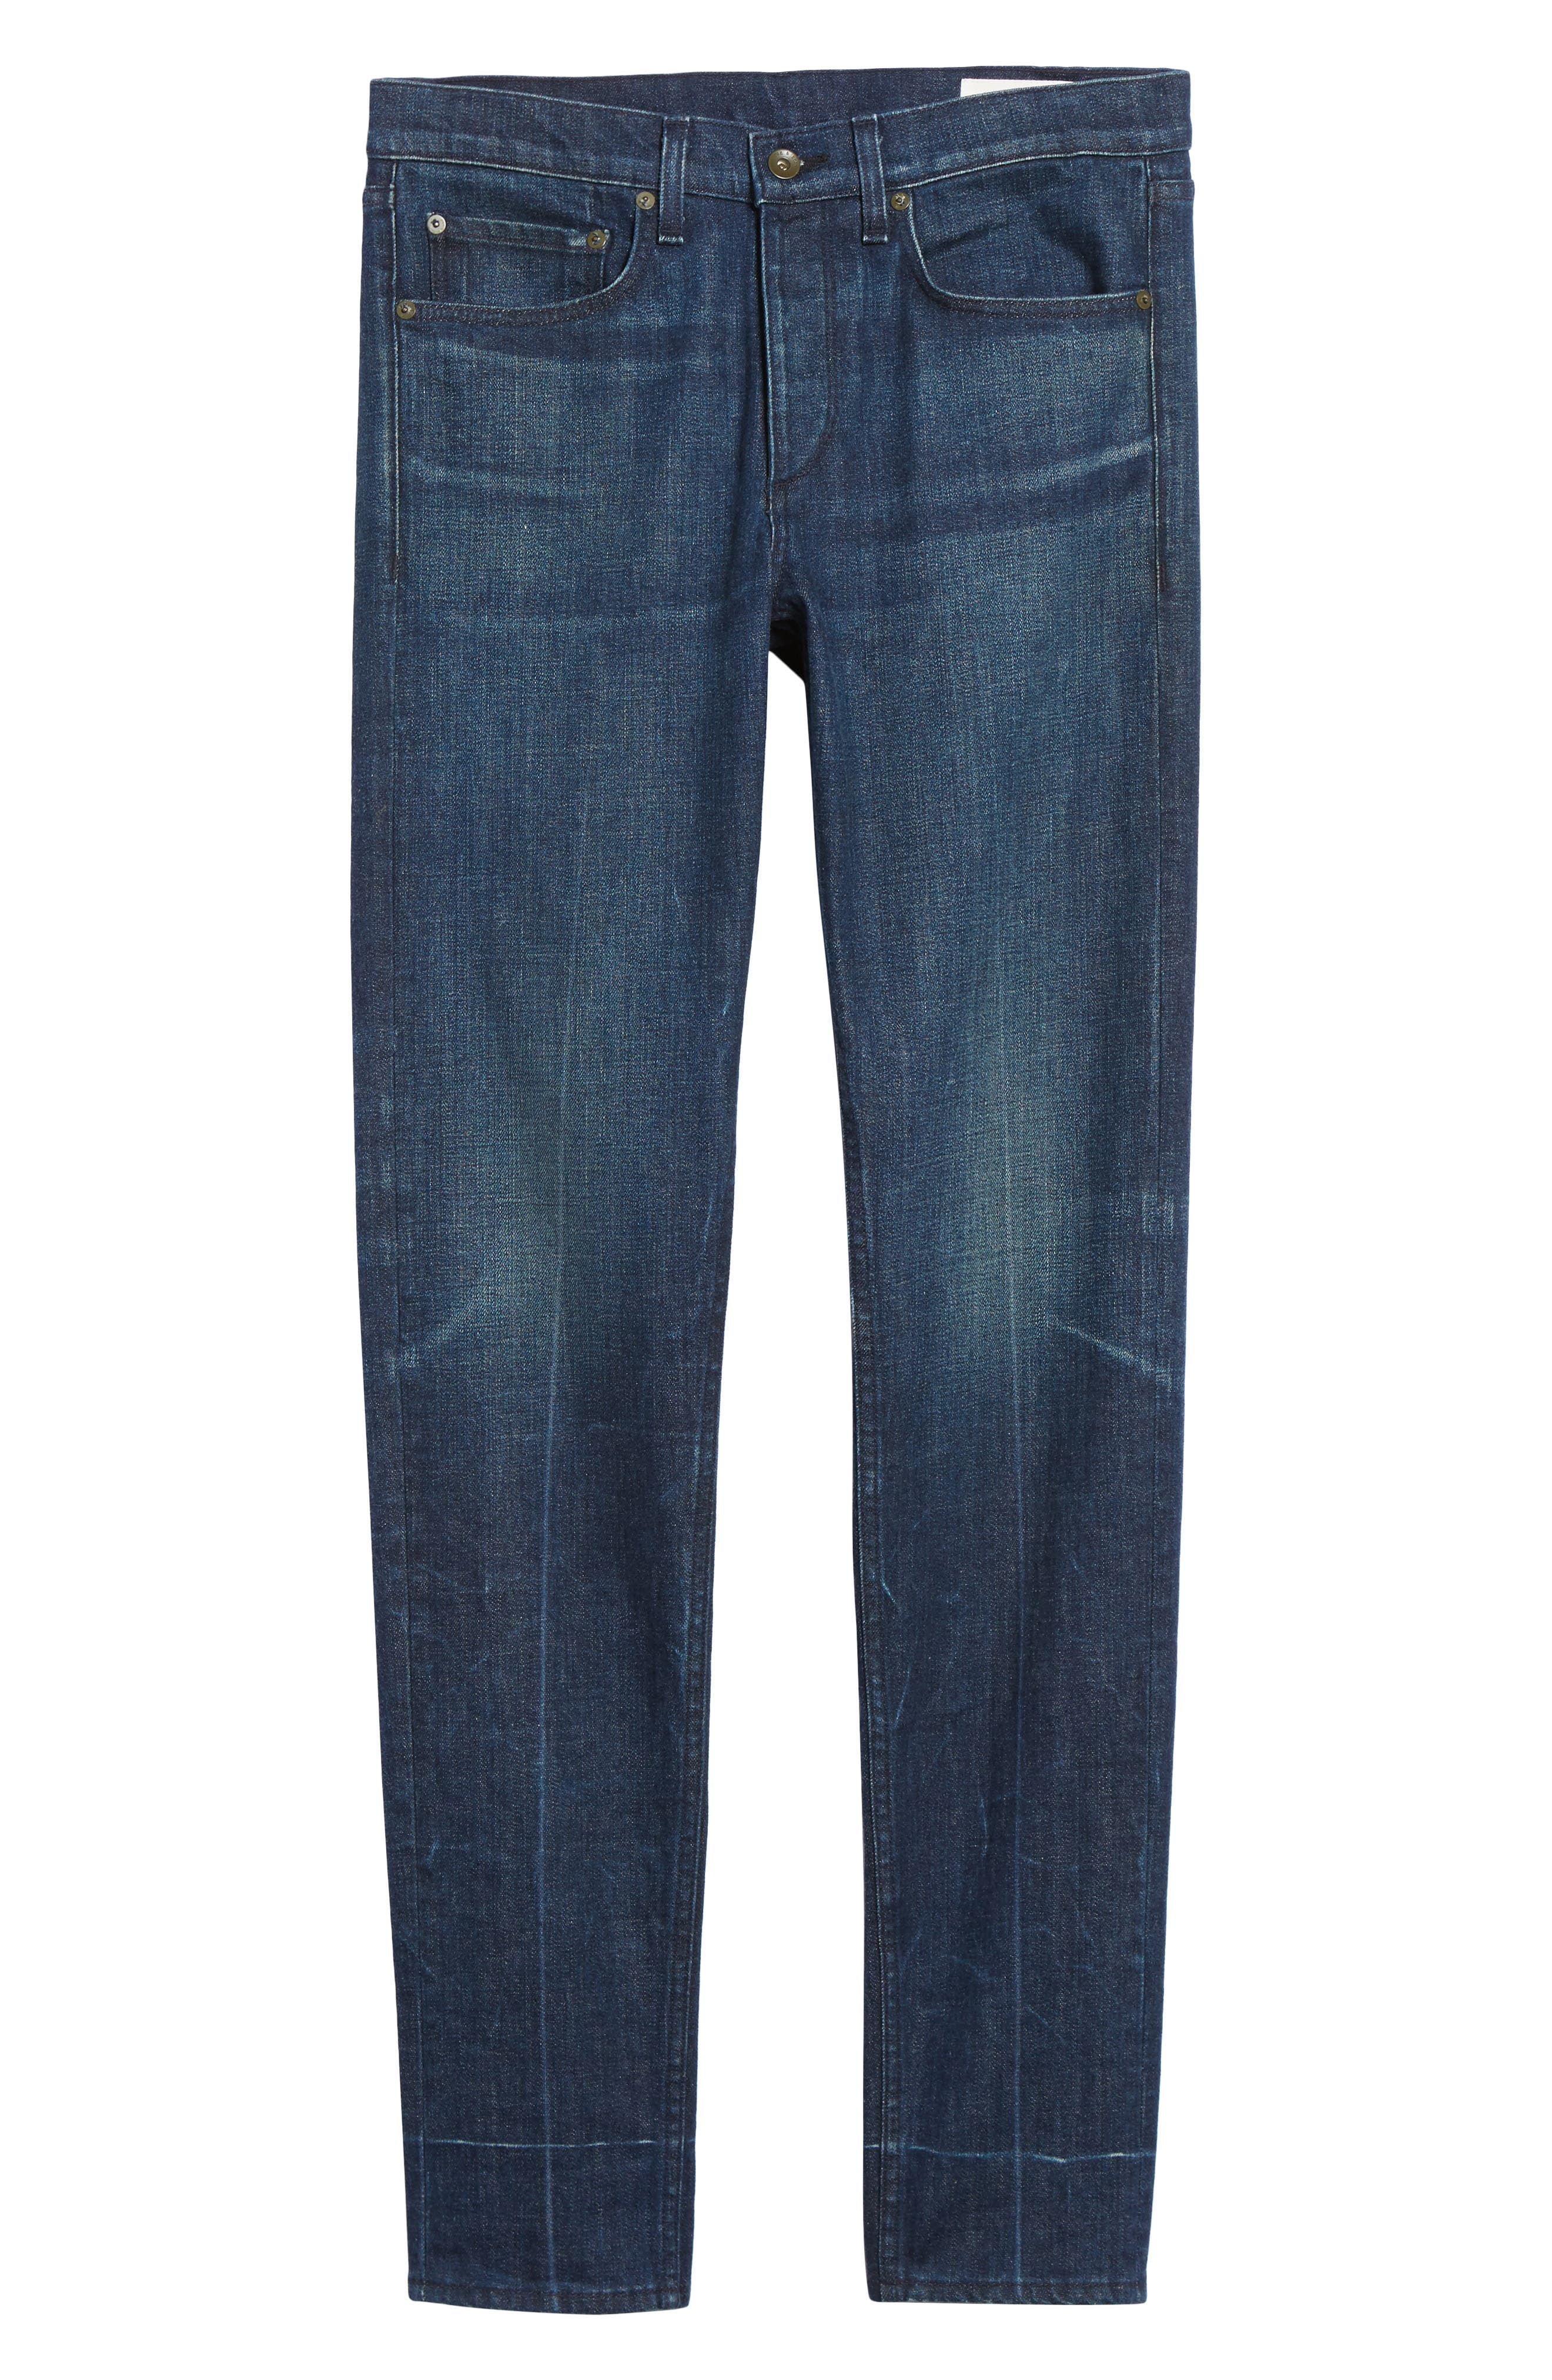 Fit 1 Skinny Fit Jeans,                             Alternate thumbnail 6, color,                             402